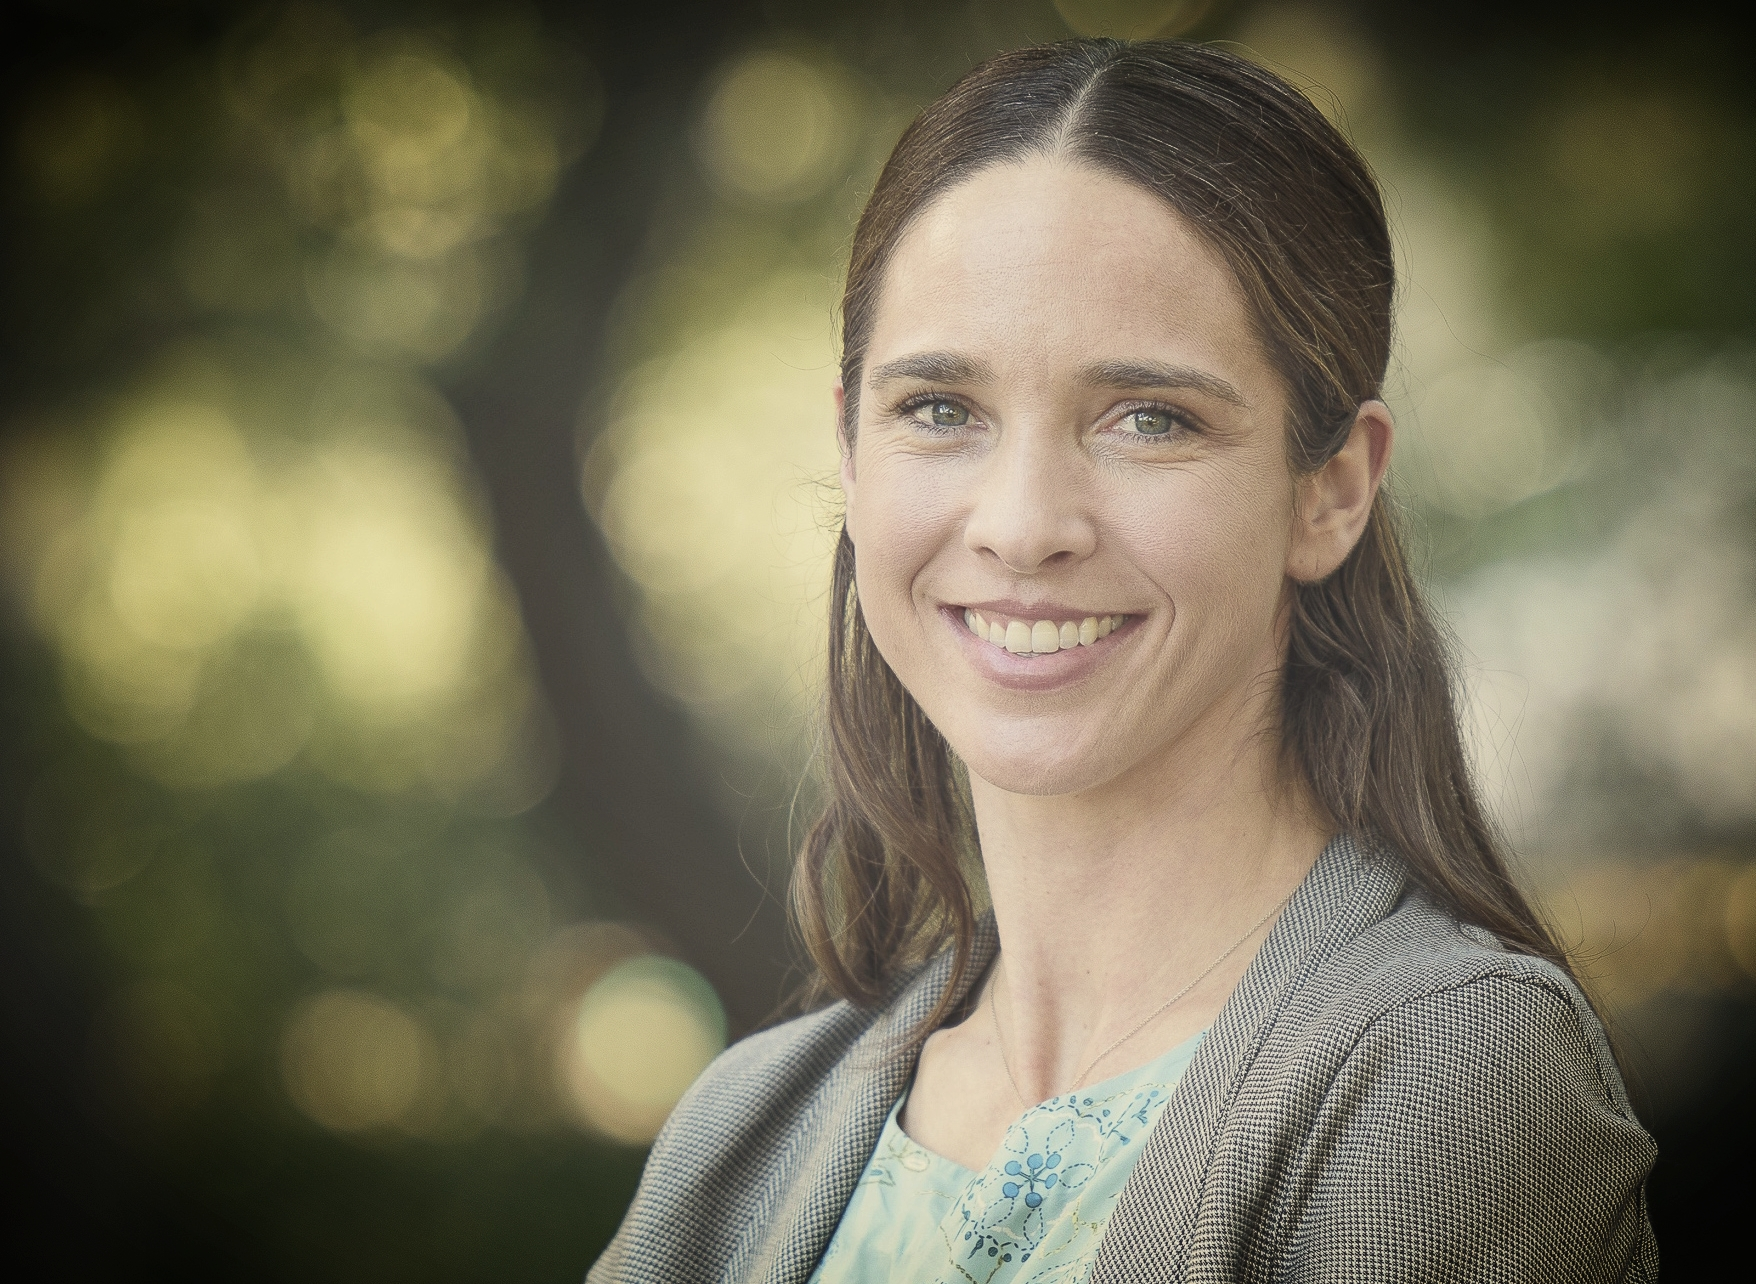 Katharine Mach is a Senior Research Scientist at Stanford University, where she leads the Stanford Environment Assessment Facility. Advancing foundations for action, her research is focused on integrative assessment of climate change risks and response options. From 2010-15, Mach co-directed the scientific activities of Working Group II of the Intergovernmental Panel on Climate Change, work that culminated in the IPCC's Fifth Assessment Report and its  Special Report on Managing the Risks of Extreme Events and Disasters to Advance Climate Change Adaptation . Mach received her PhD from Stanford University and AB from Harvard.